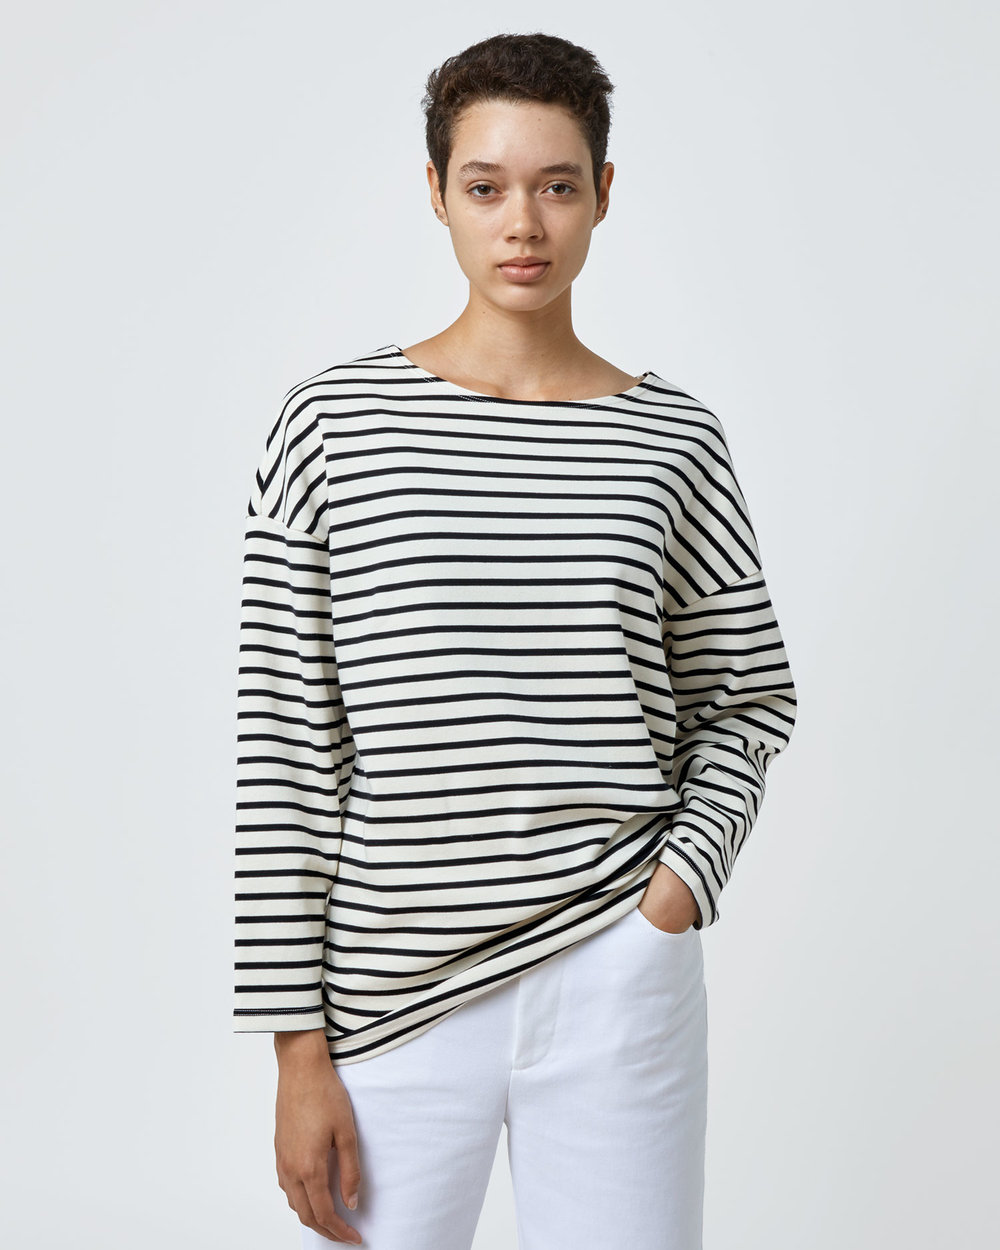 Shop One DNA Oversized Long Sleeve Striped T-shirt